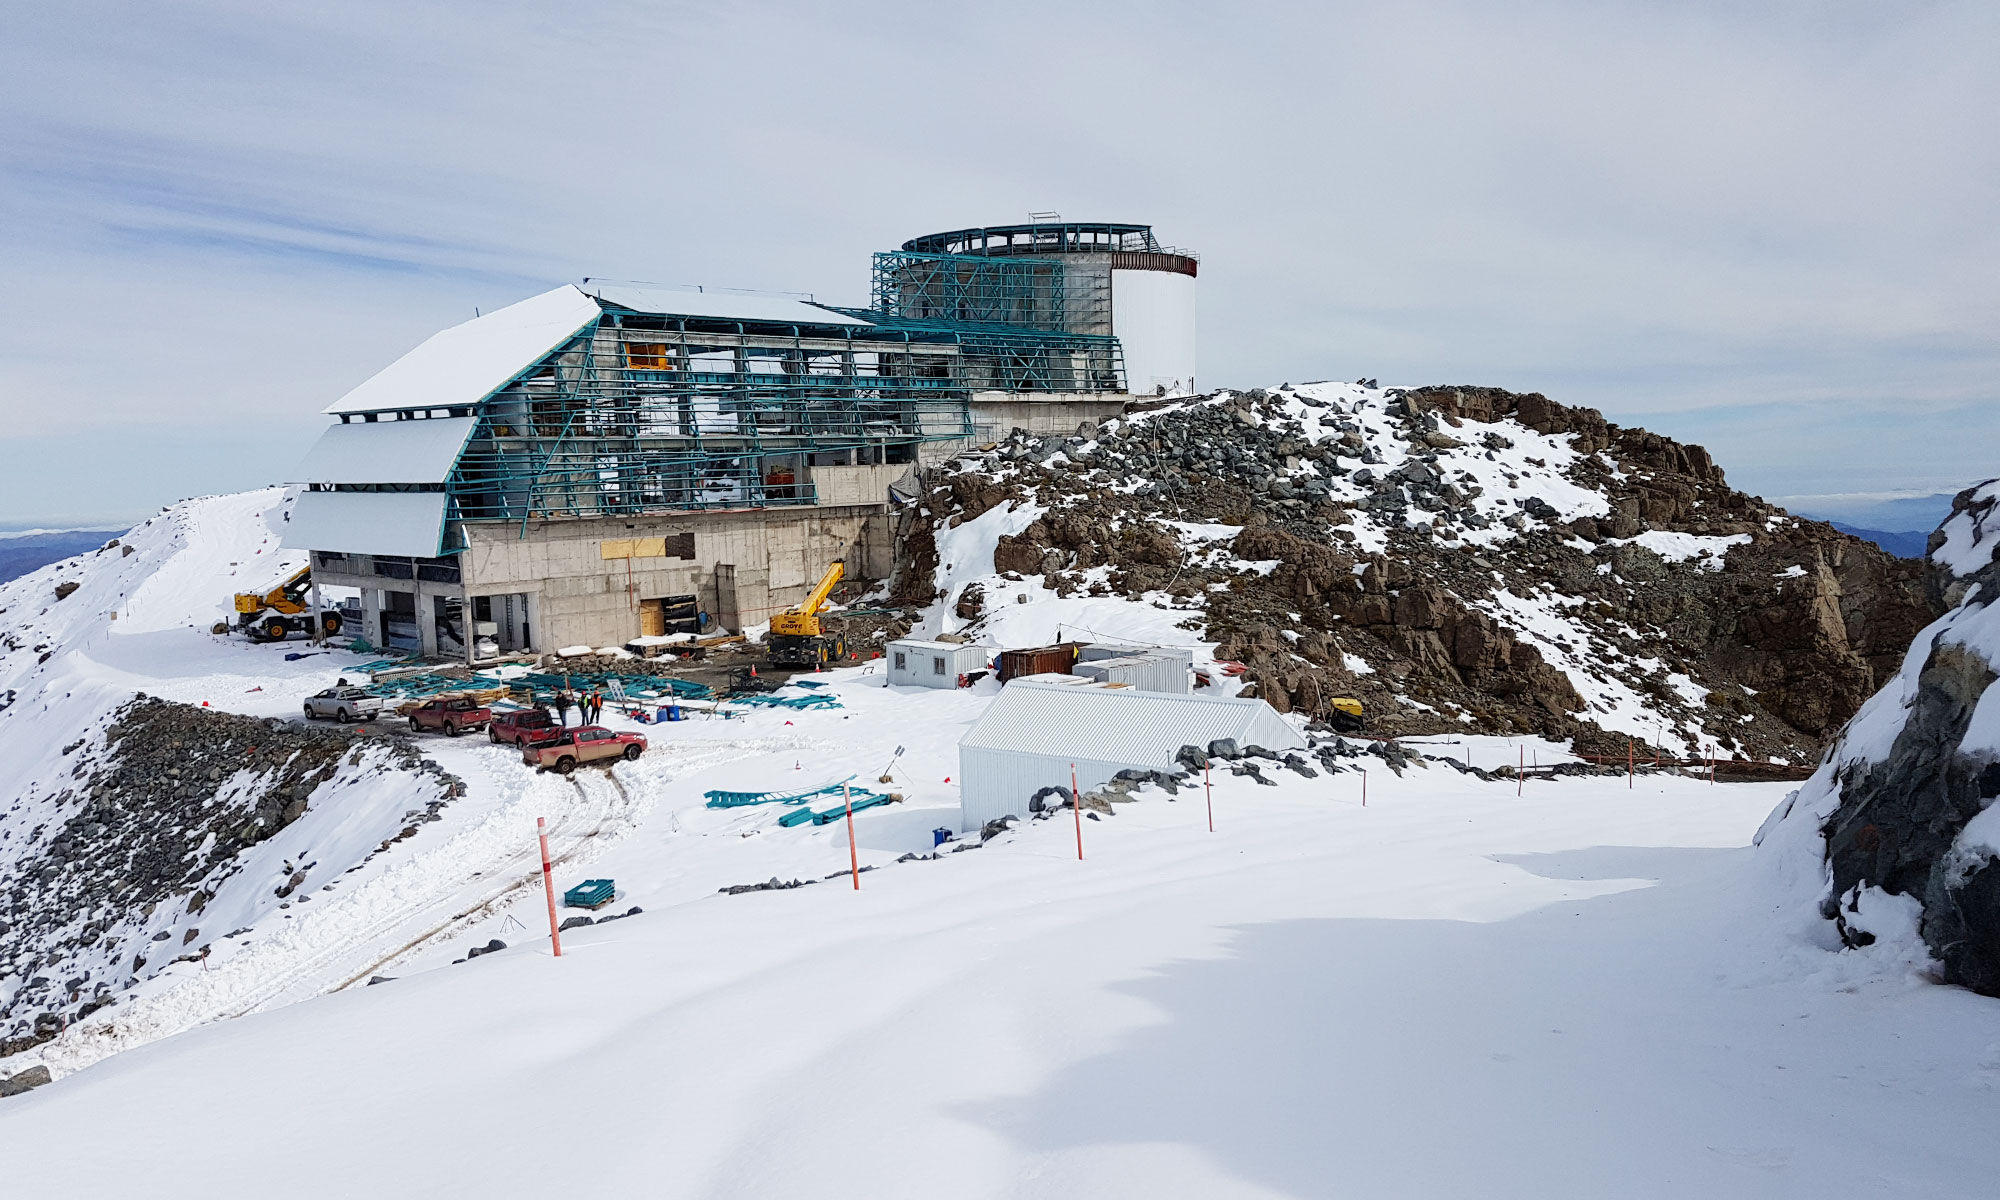 Photo of the Vera C. Rubin Observatory under construction on a snowy mountaintop.